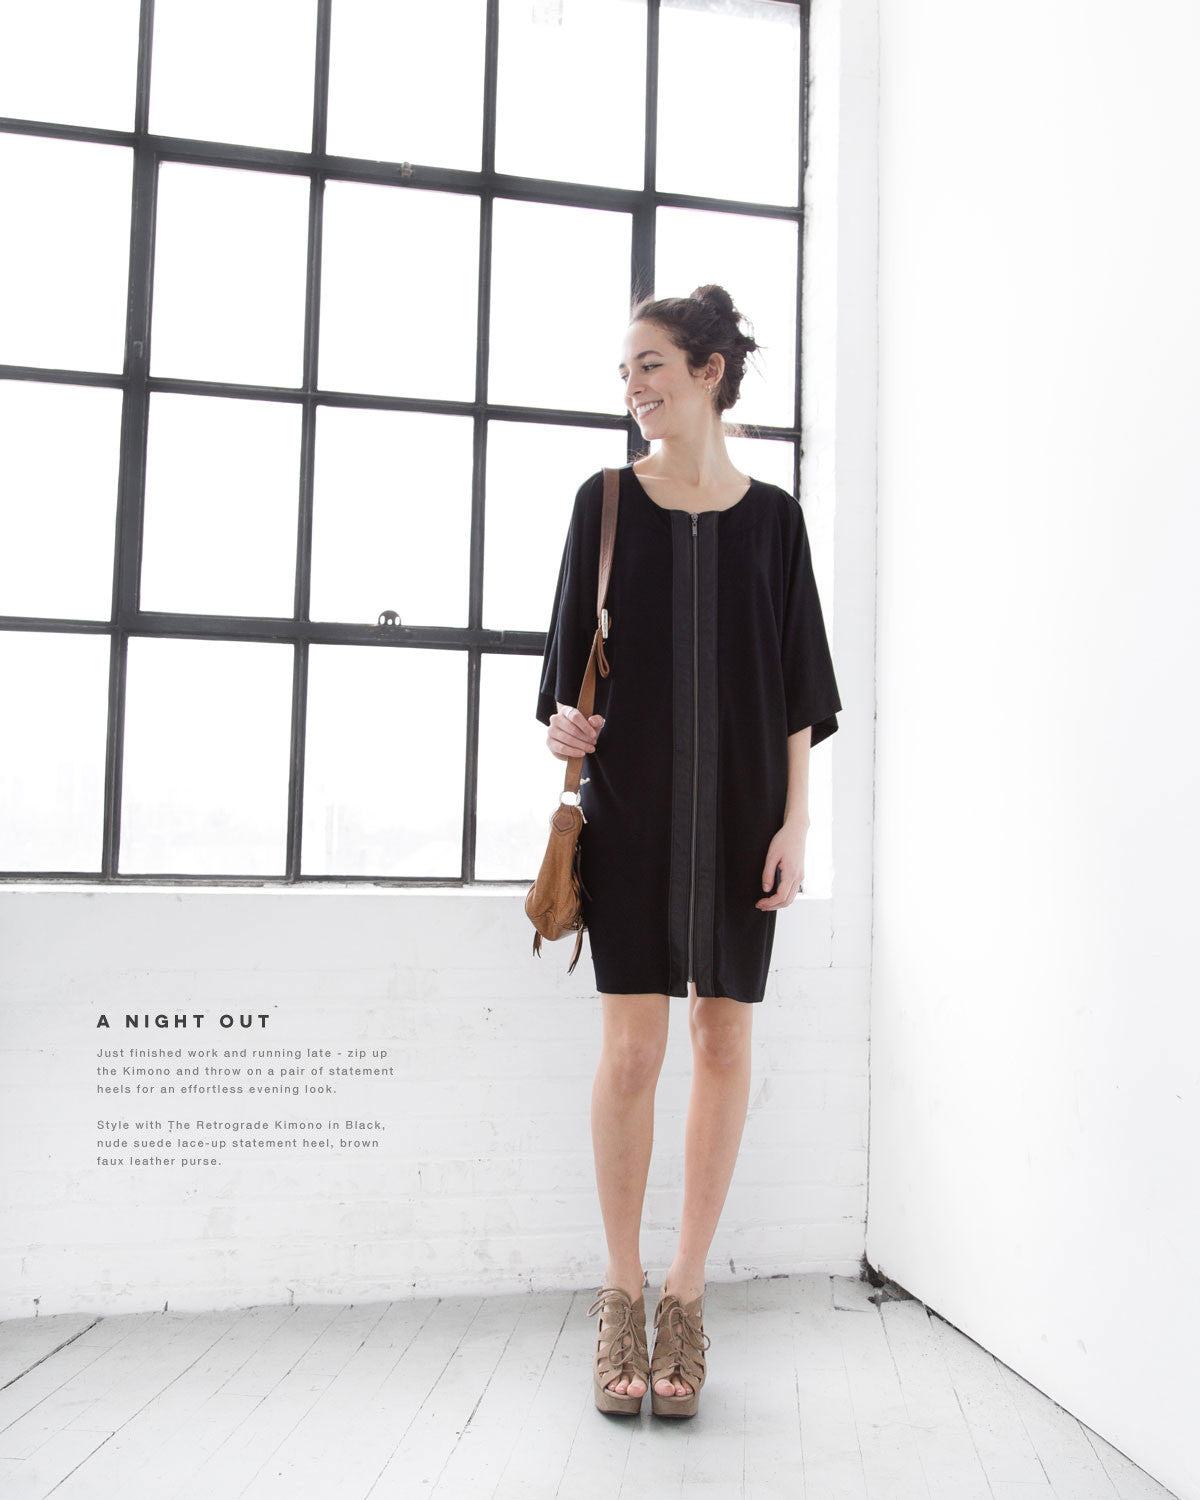 The retrograde kimono dress for a casual night out